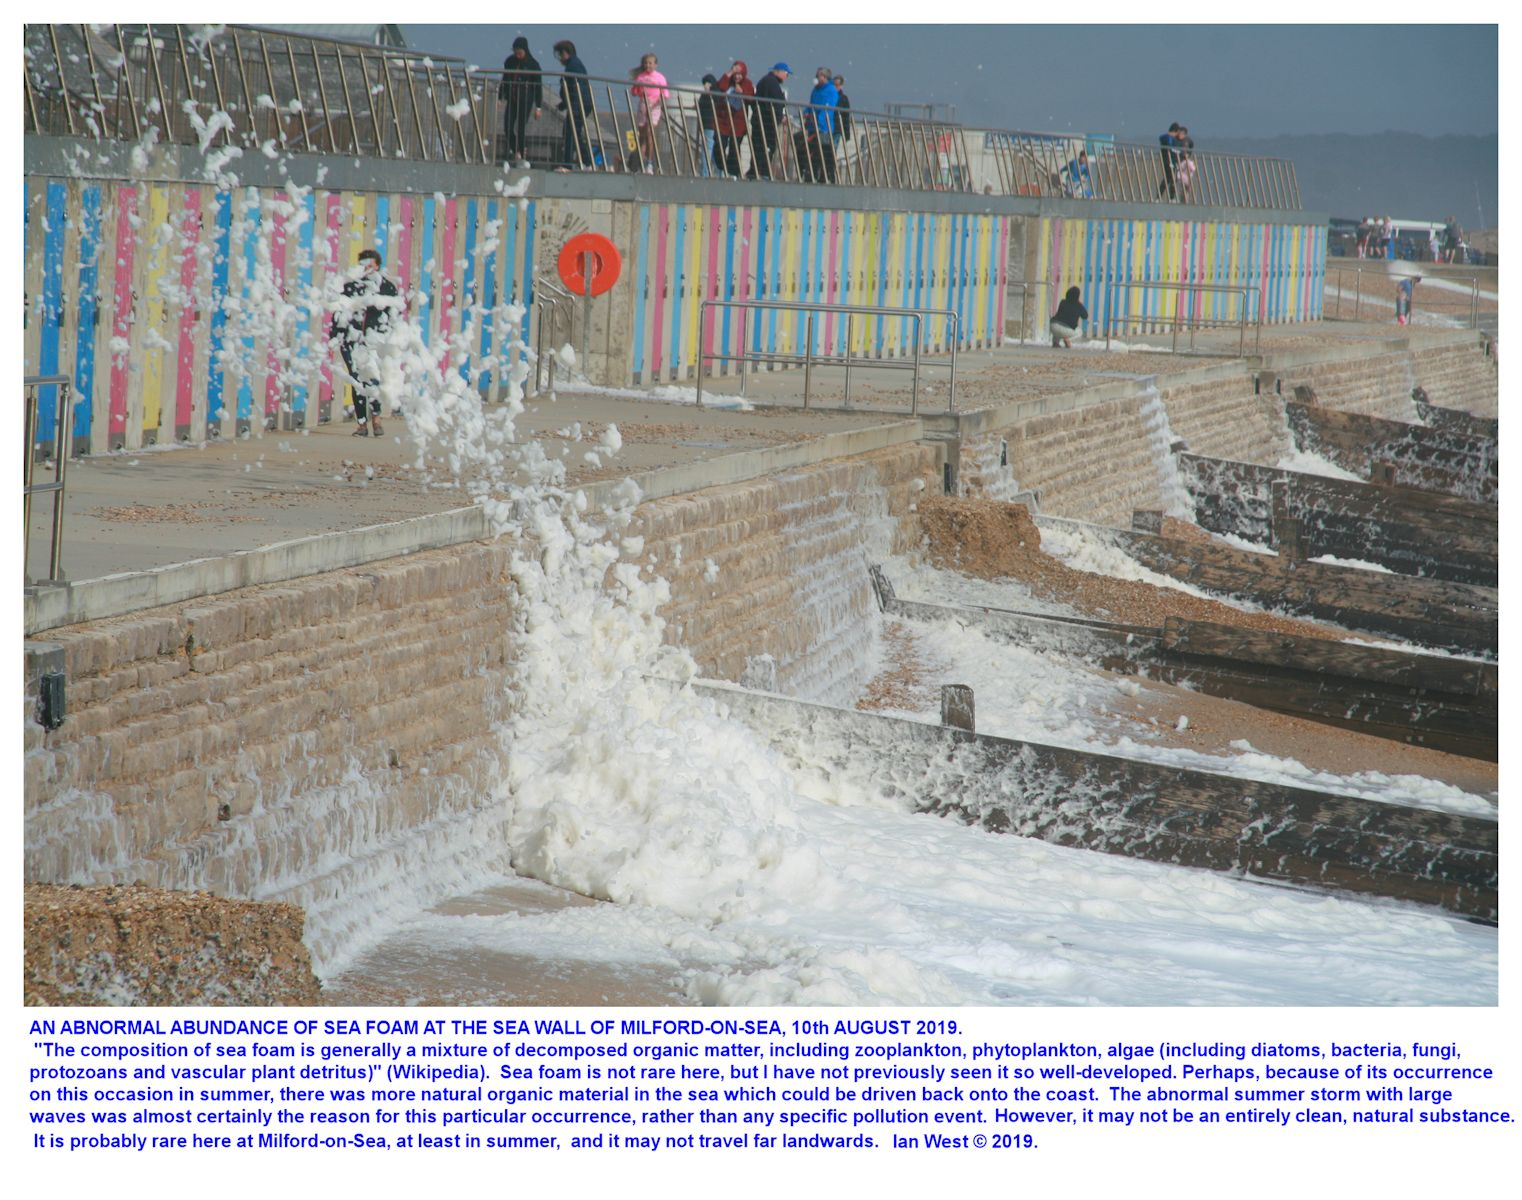 Sea foam or spume, a sea-surface, sea substance which, in some cases,<P> can contain organic pollutants, at the beach huts to the southeast of the White House, Milford, 10th August 2019